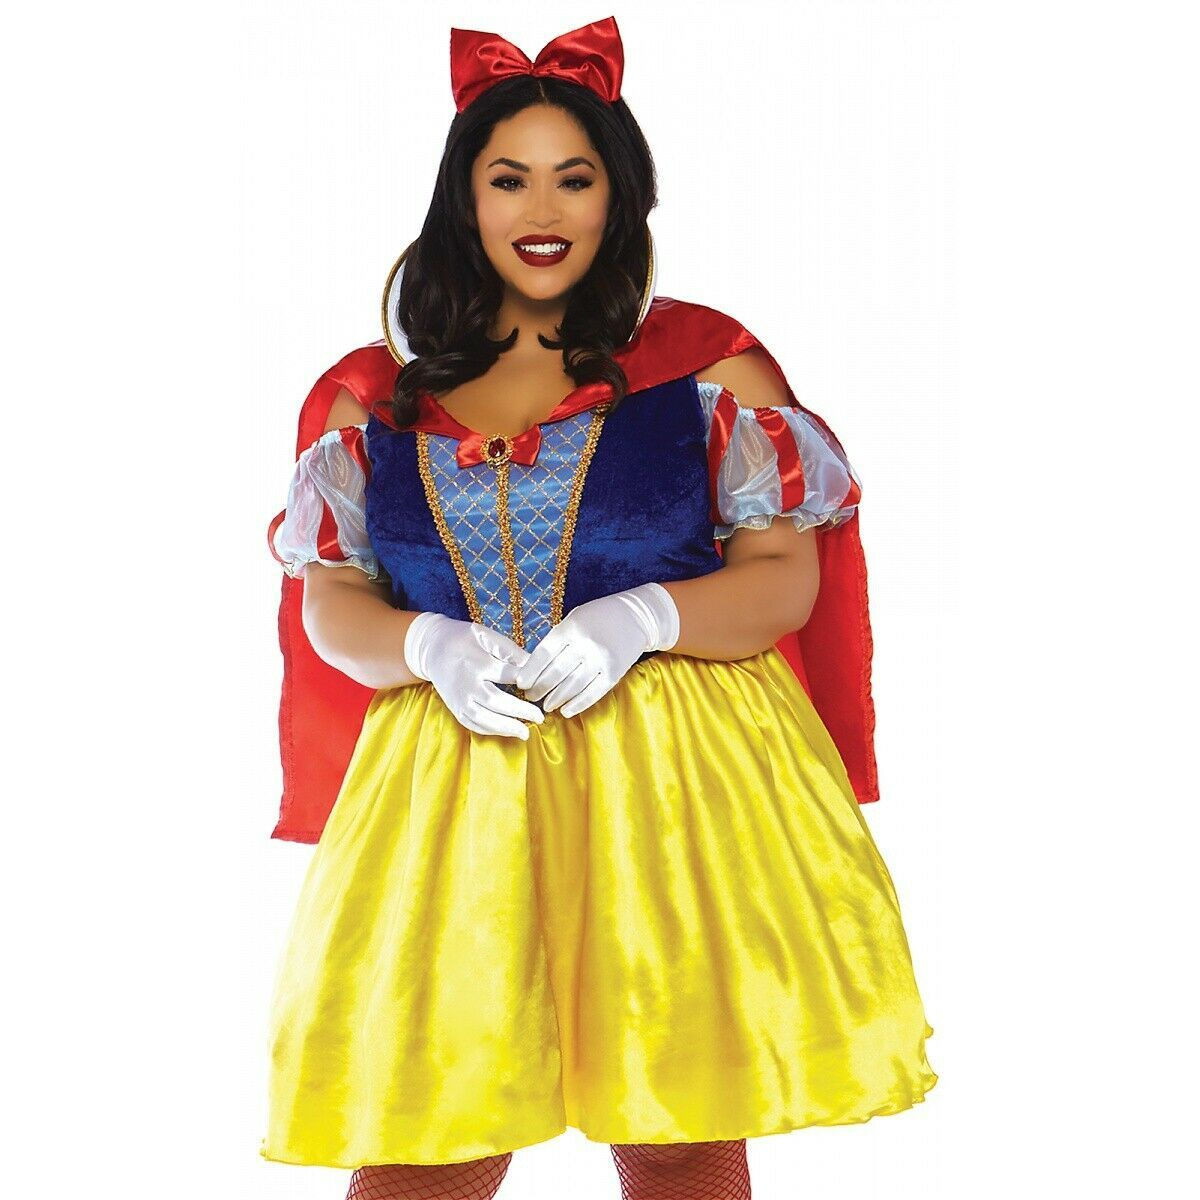 37 Plus Size Womens Halloween Costume Ideas Cute Costumes For Plus Size Women